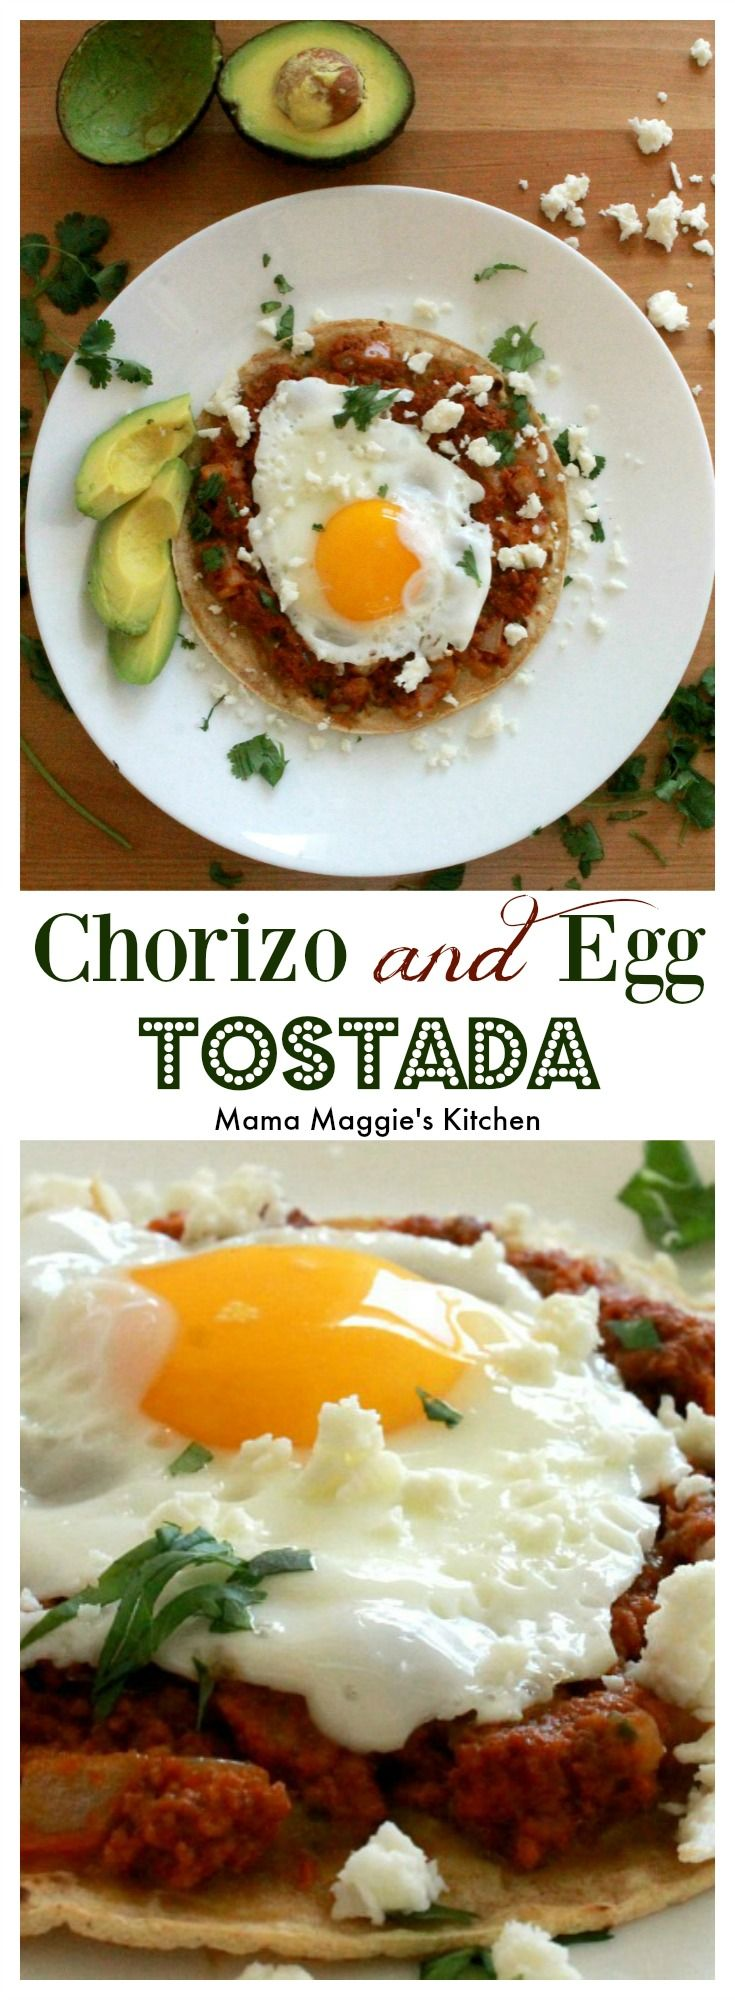 Chorizo And Egg Tostada Is Delicious Flavorful Breakfast Option This Yummy Mexican Food Classic